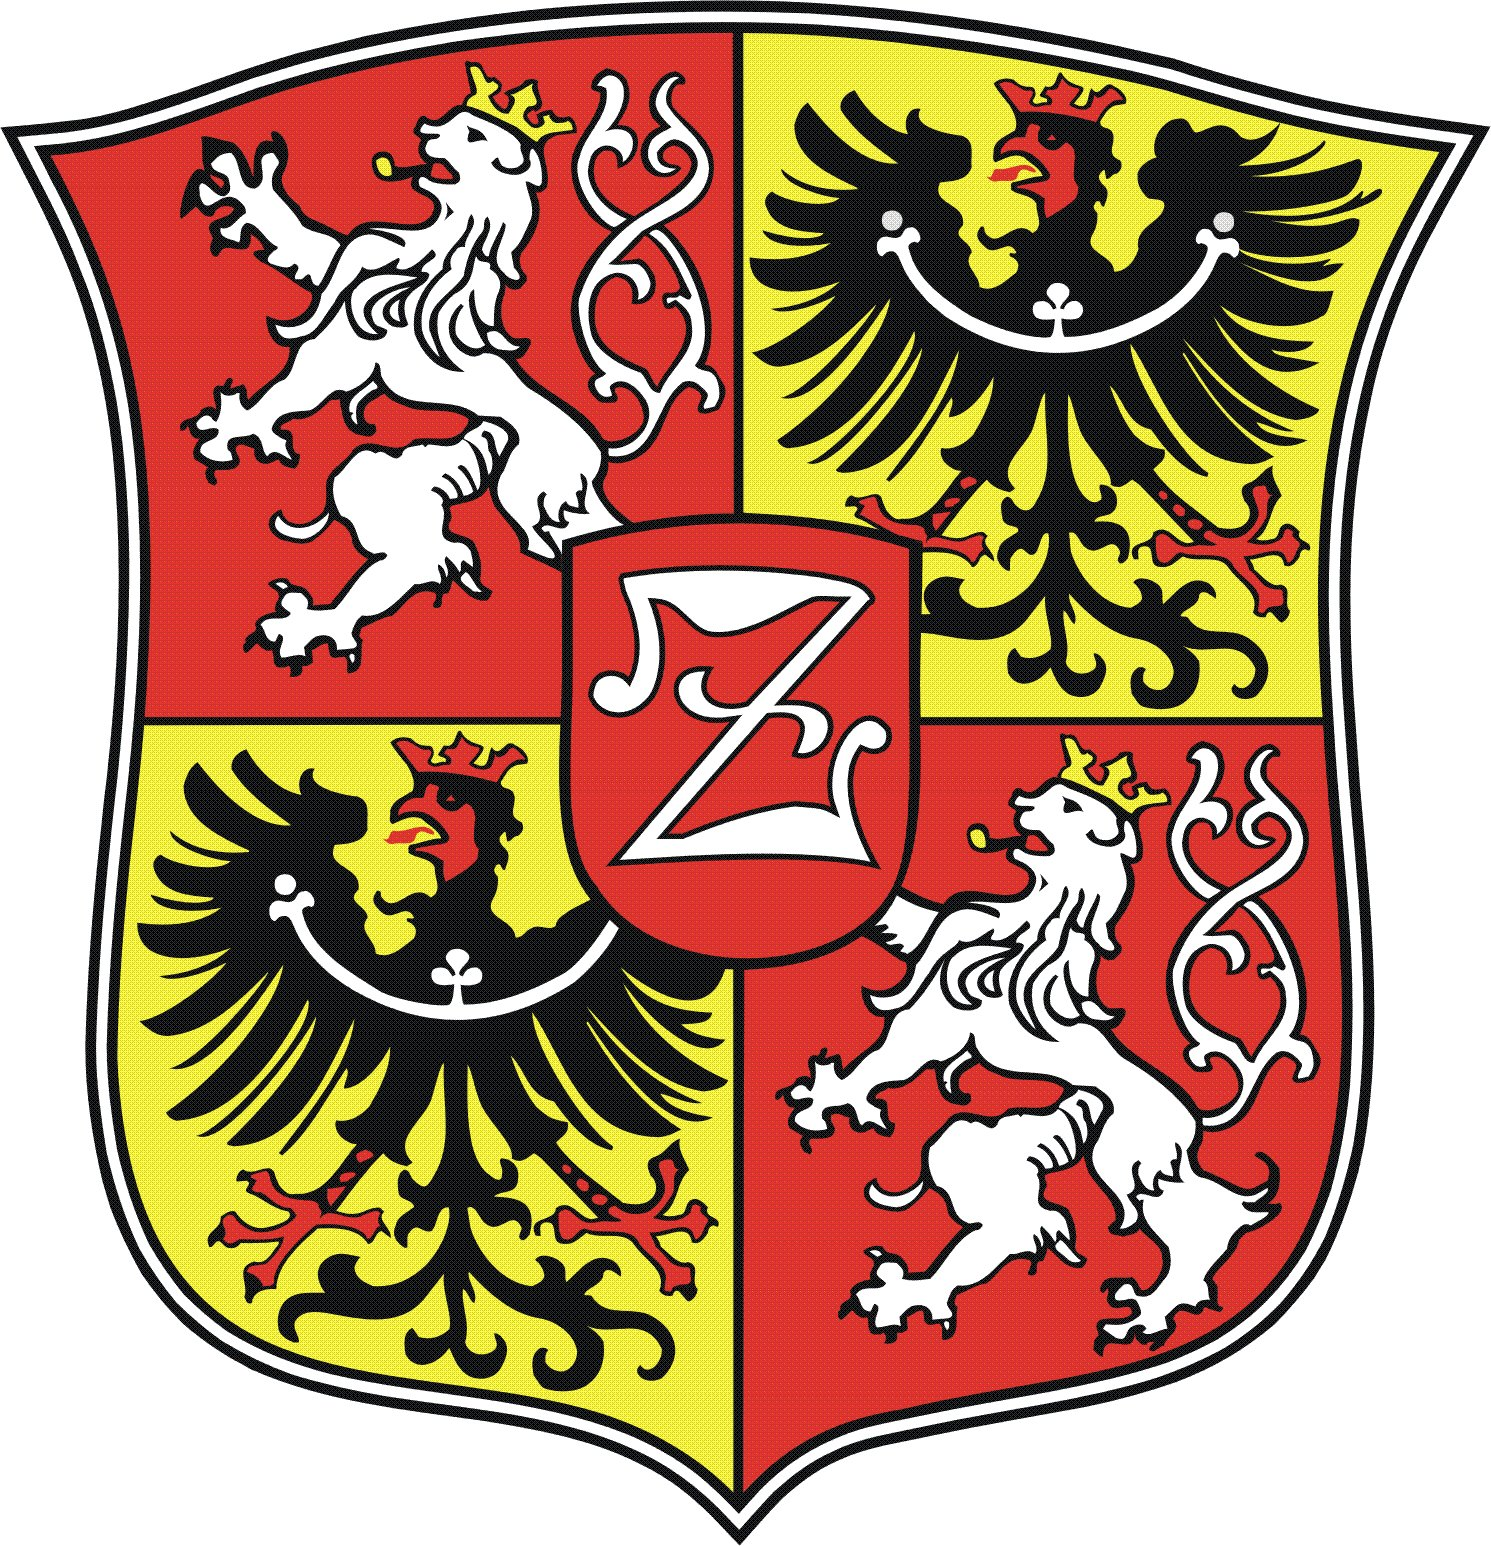 http://revival.ioer.eu/fileadmin/user_upload/revival/logos/wappen_zittau_weiss.jpg